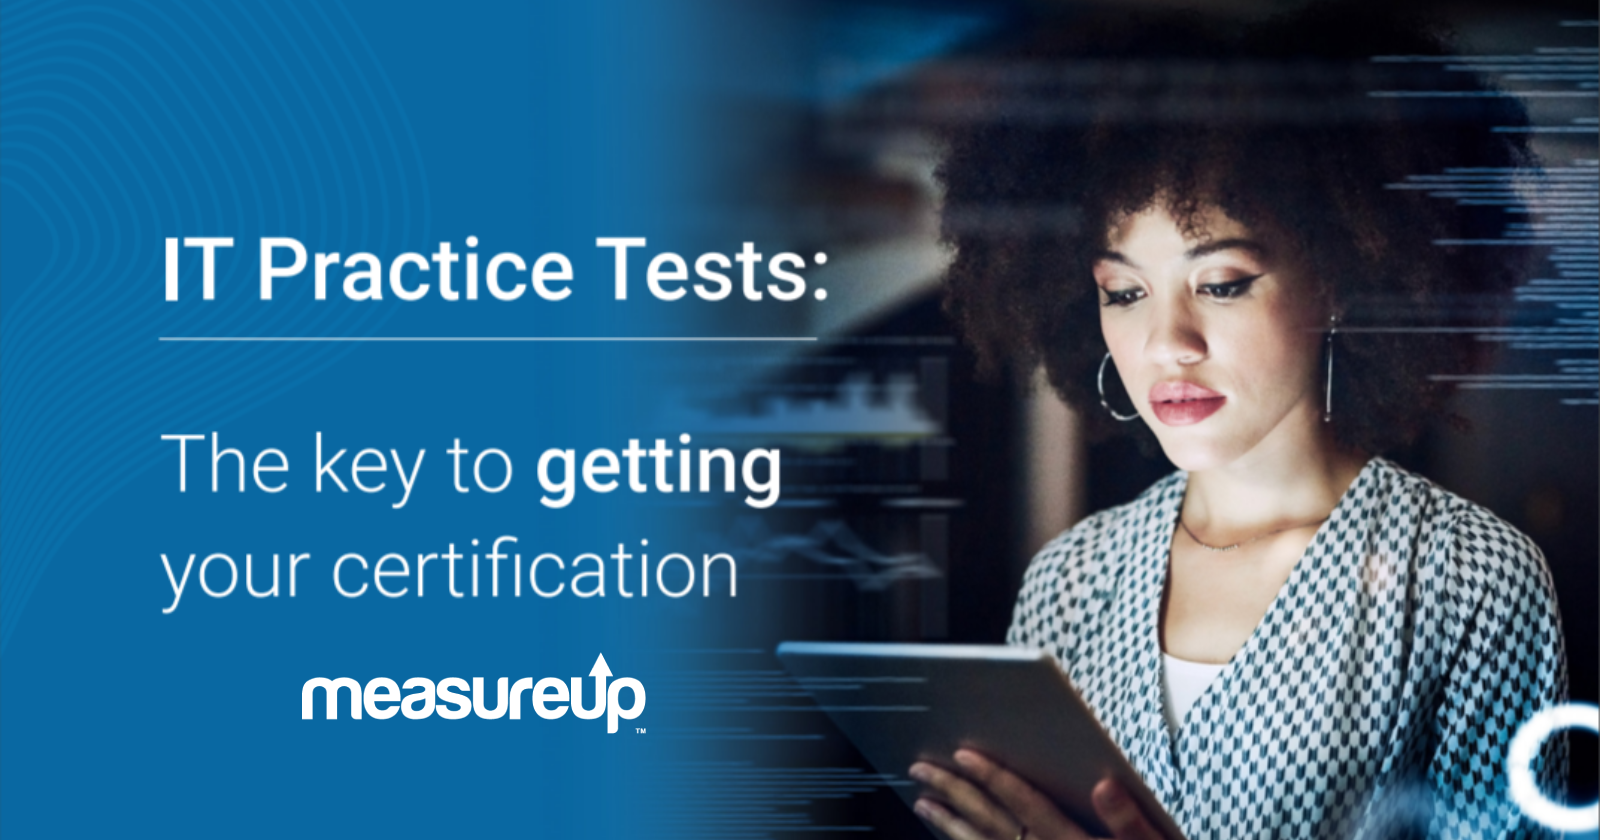 IT Practice Tests: The key to getting your certification